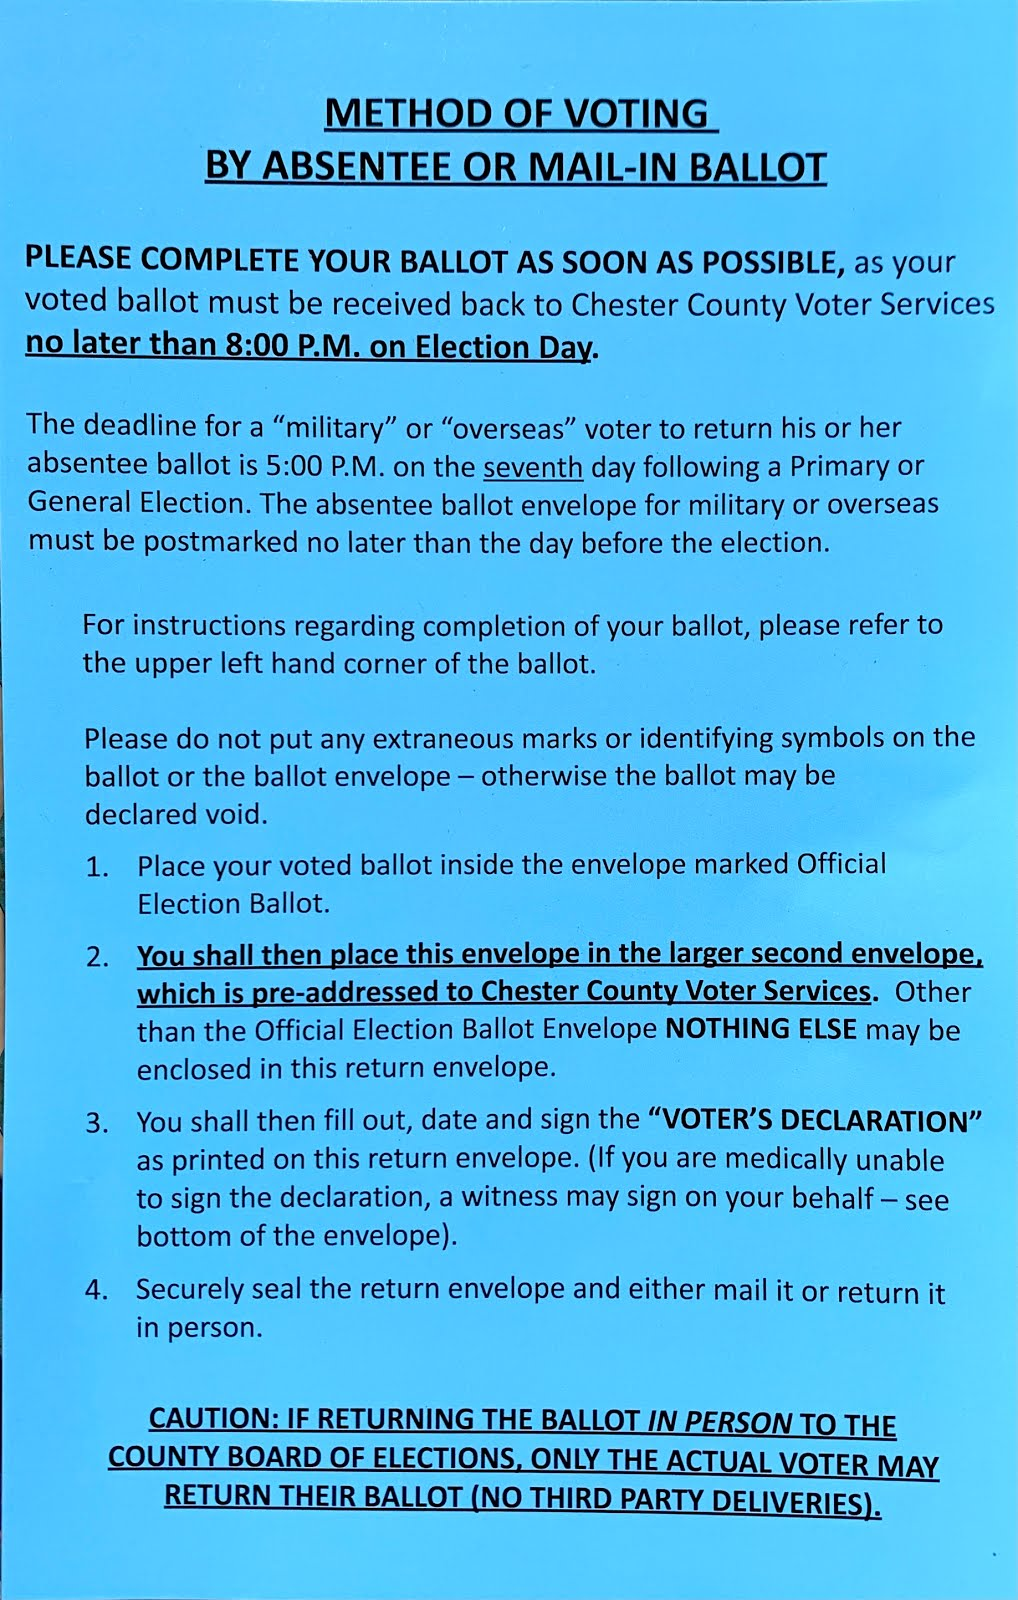 Method of Voting By Absentee or Mail-In Ballot